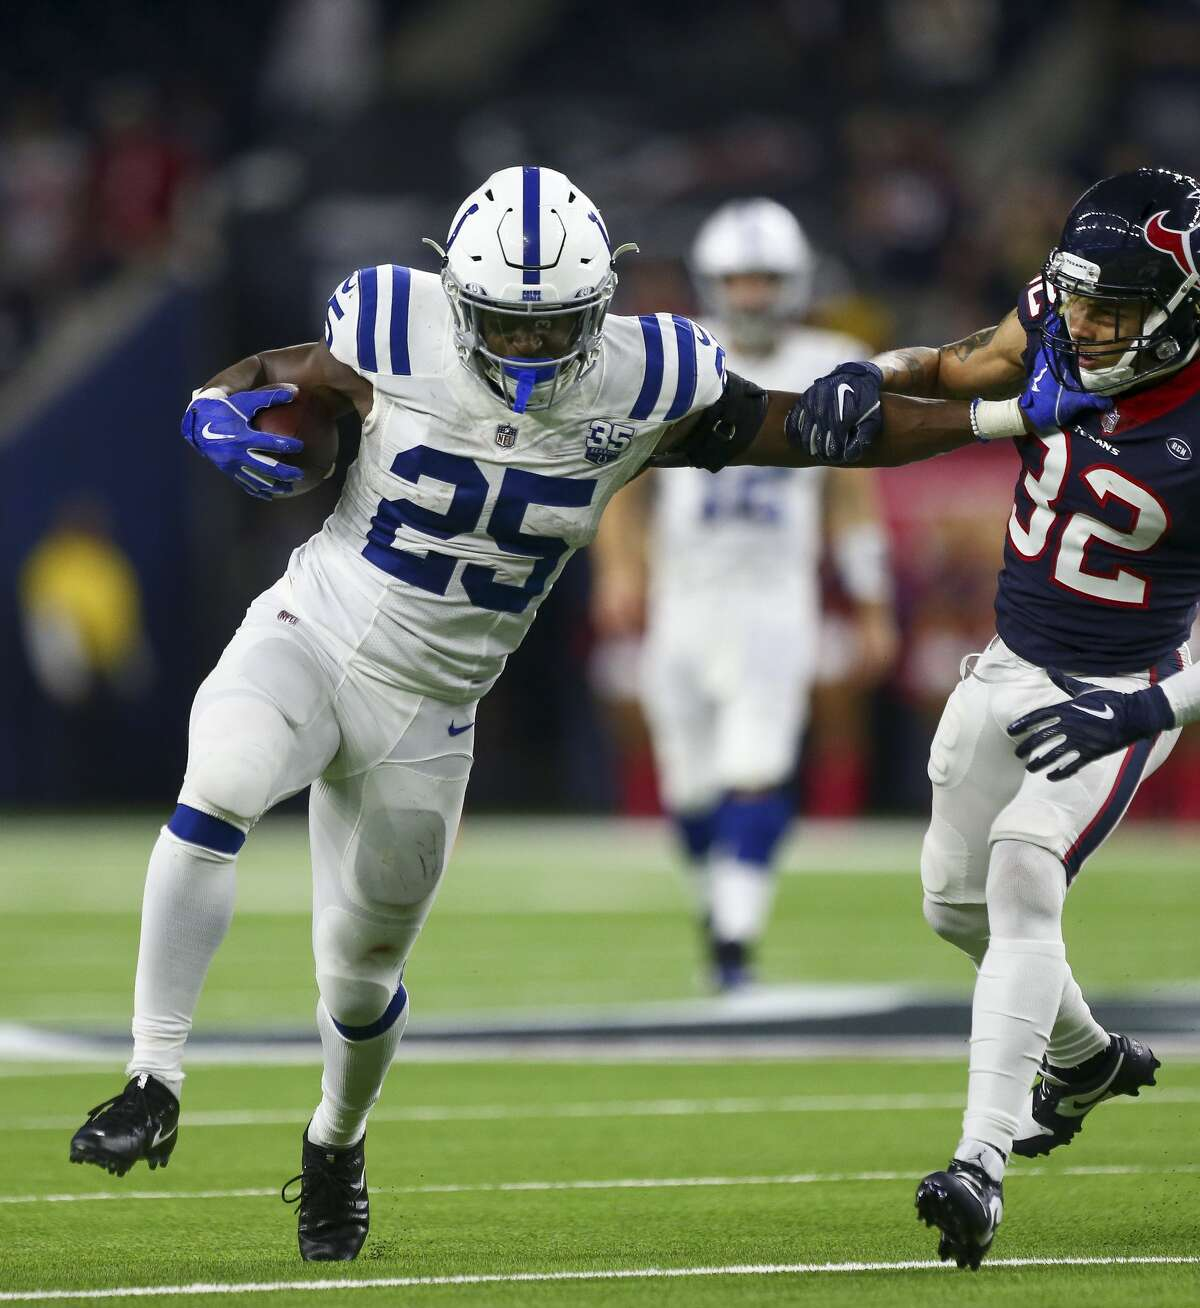 Indianapolis Colts running back Marlon Mack (25) stiff arms Houston Texans free safety Tyrann Mathieu (32) while running the ball during the fourth quarter of an NFL first round playoff game between the Houston Texans and the Indianapolis Colts at NRG Stadium Saturday, Jan. 5, 2019, in Houston. The Colts won 21-7.